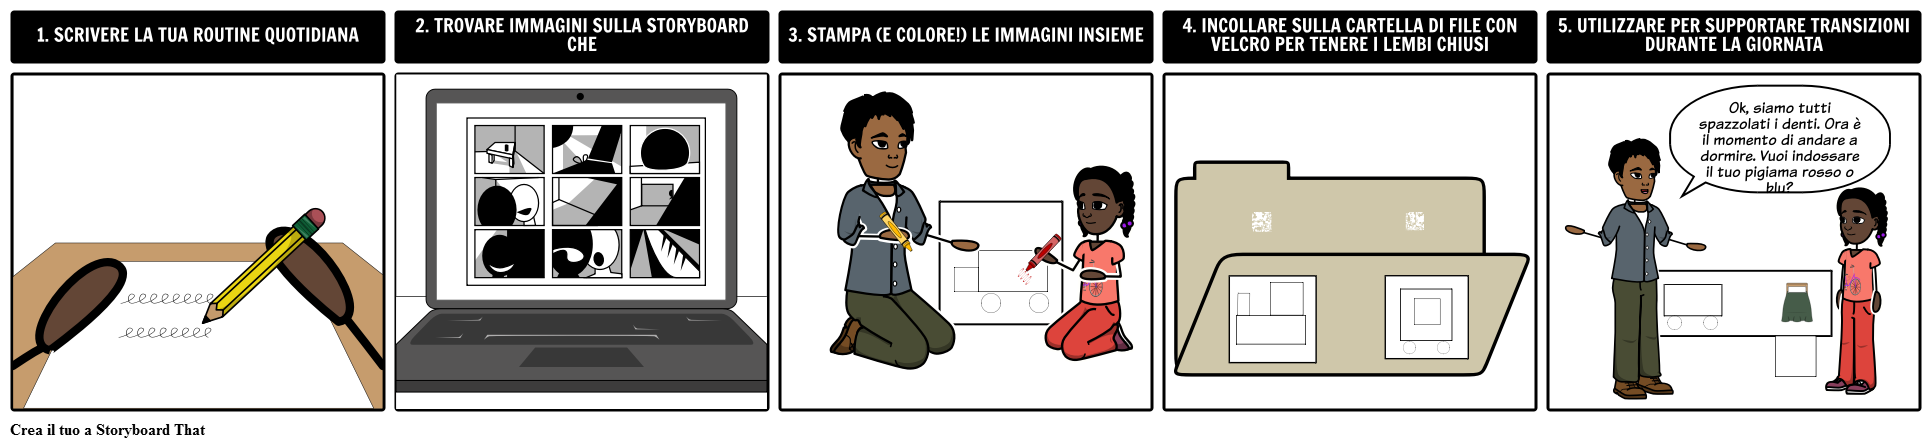 Come Fare una Tabella di Routine su Storyboard That